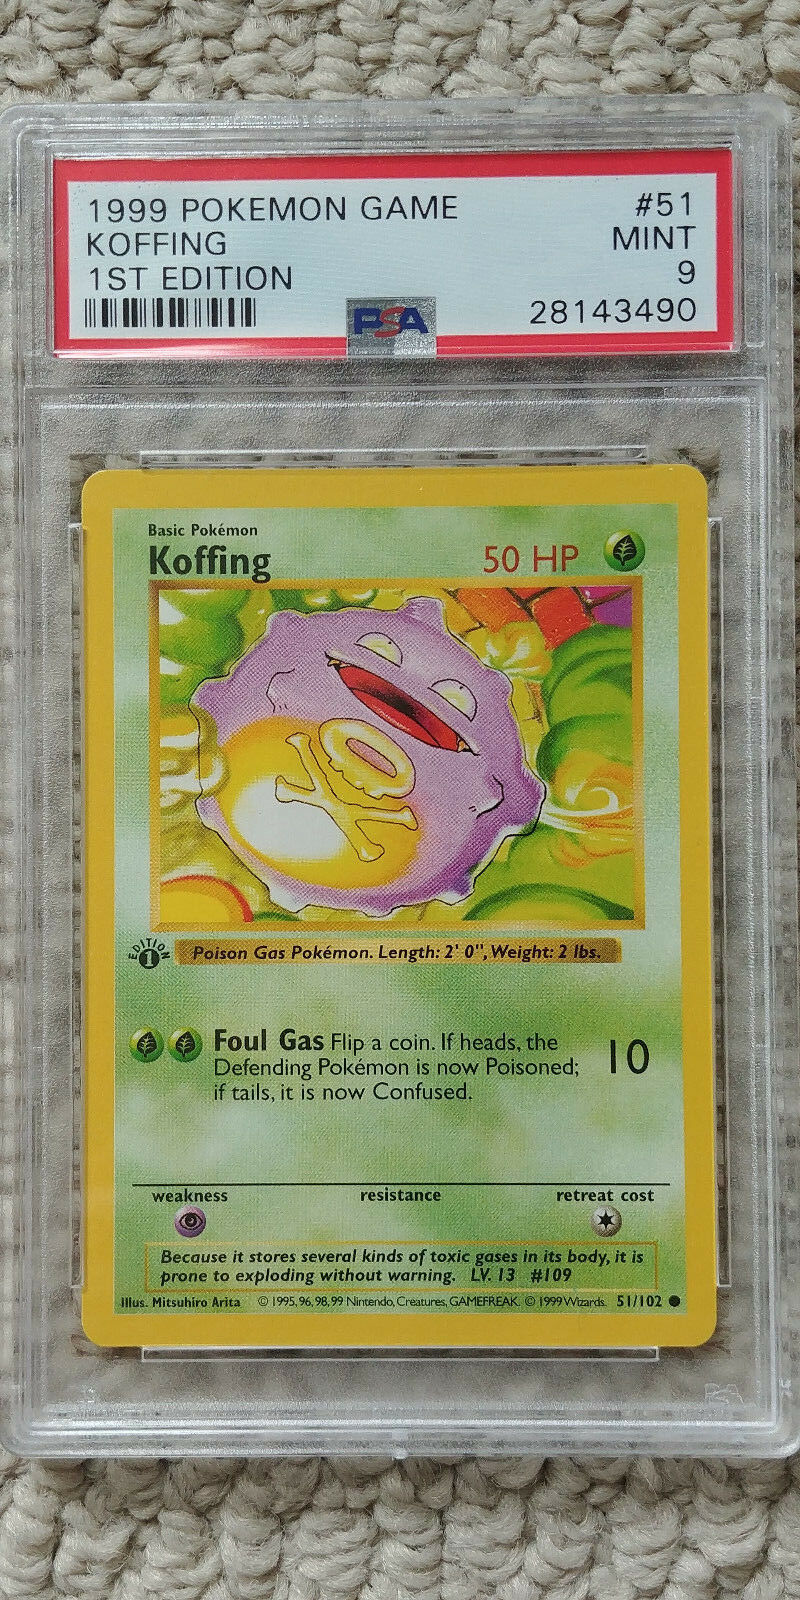 Pokemon Koffing 51/102 1st Edition Base Set PSA 9 Pokemon Game 1999 Shadowless